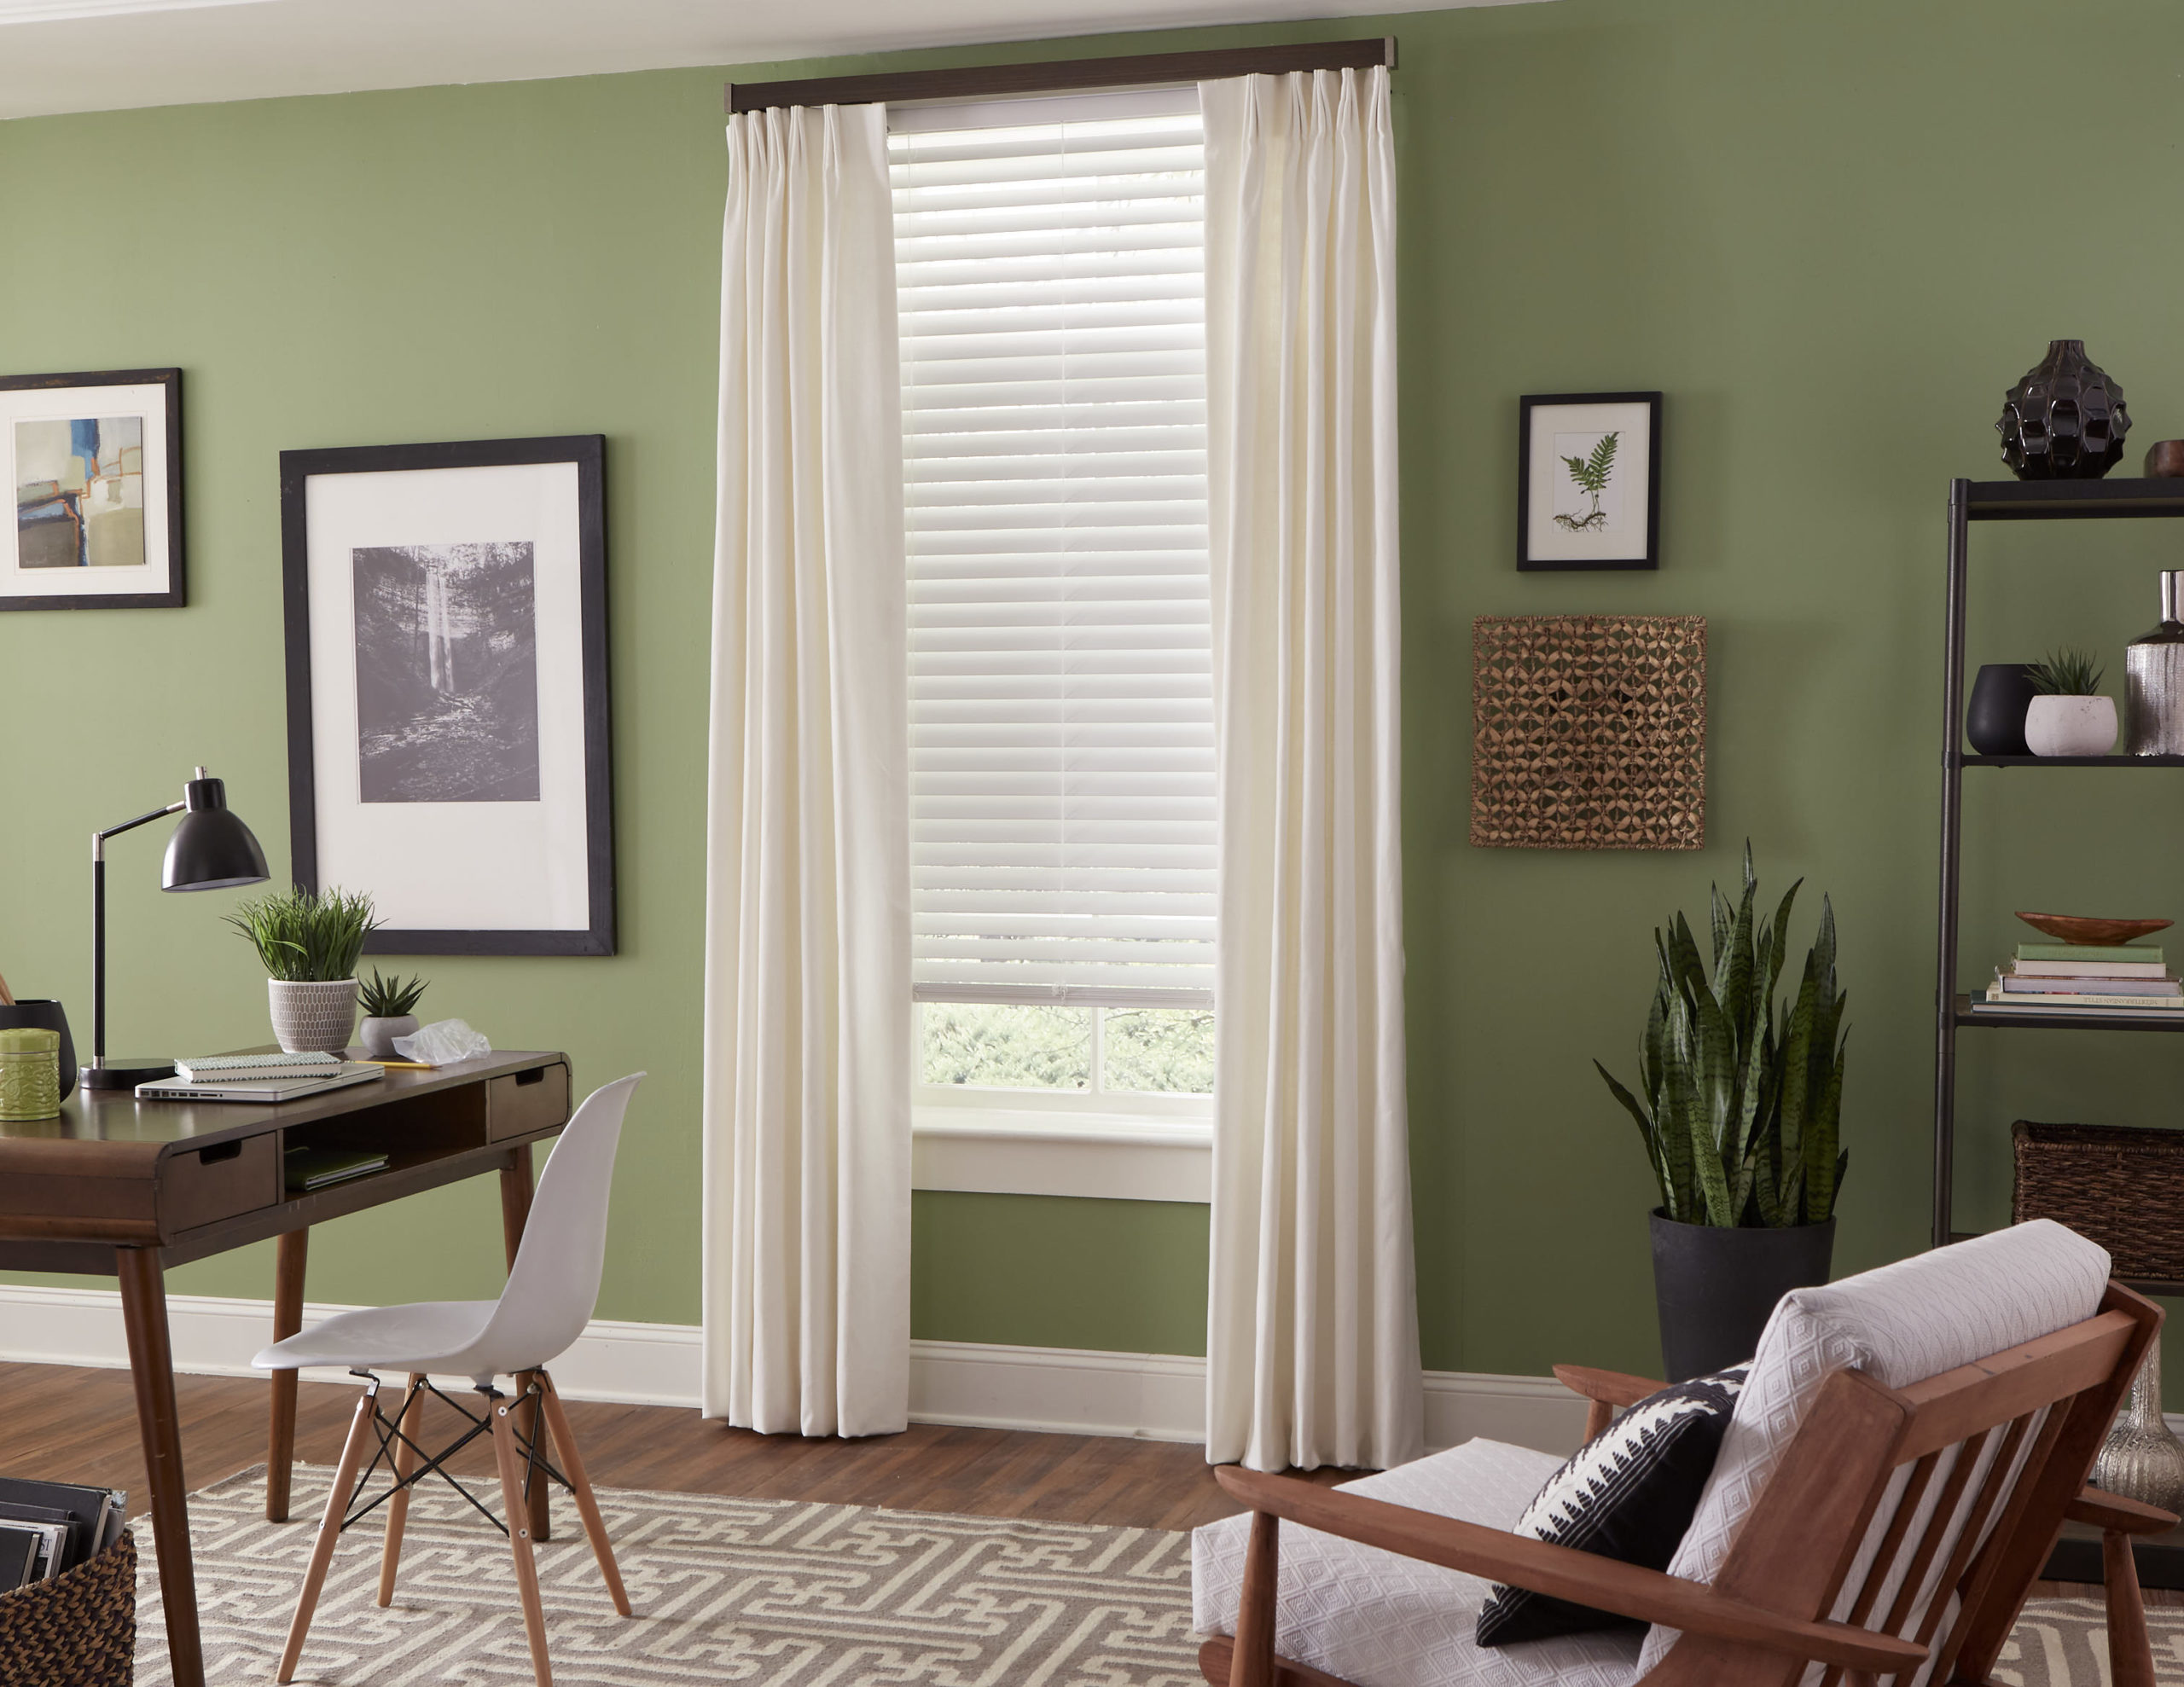 Pinnacle PrivacyPlus Blinds and Select Wood Flat Fascia Traverse Rods